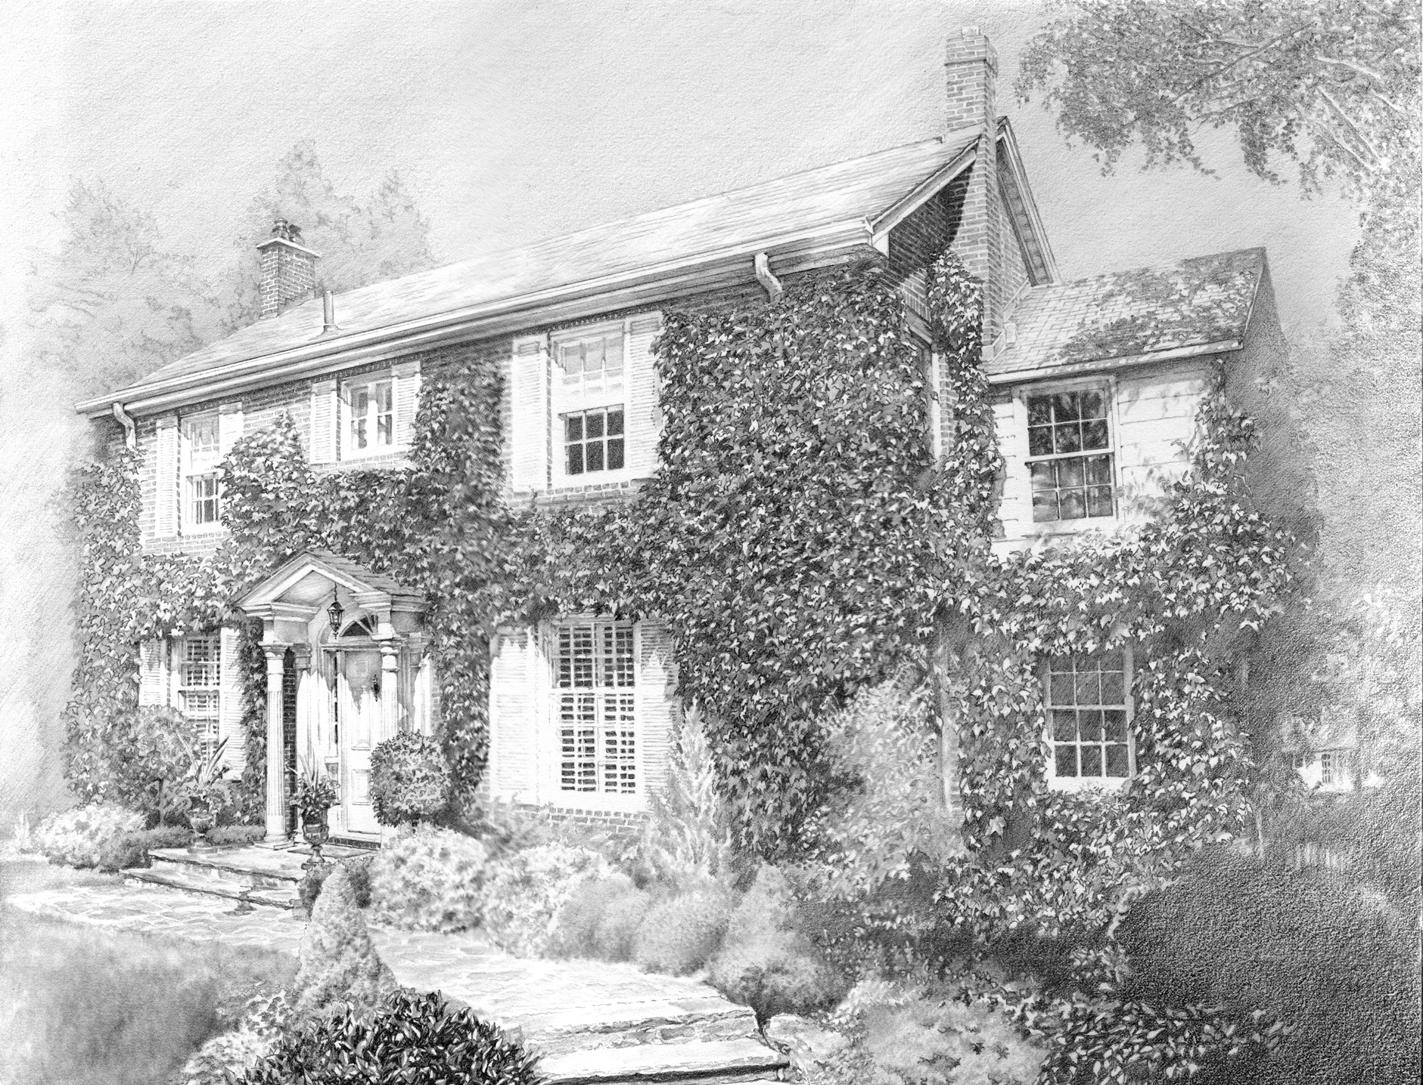 Pencil Sketch Art Designs PHotos Pencil Sketch Art Photos